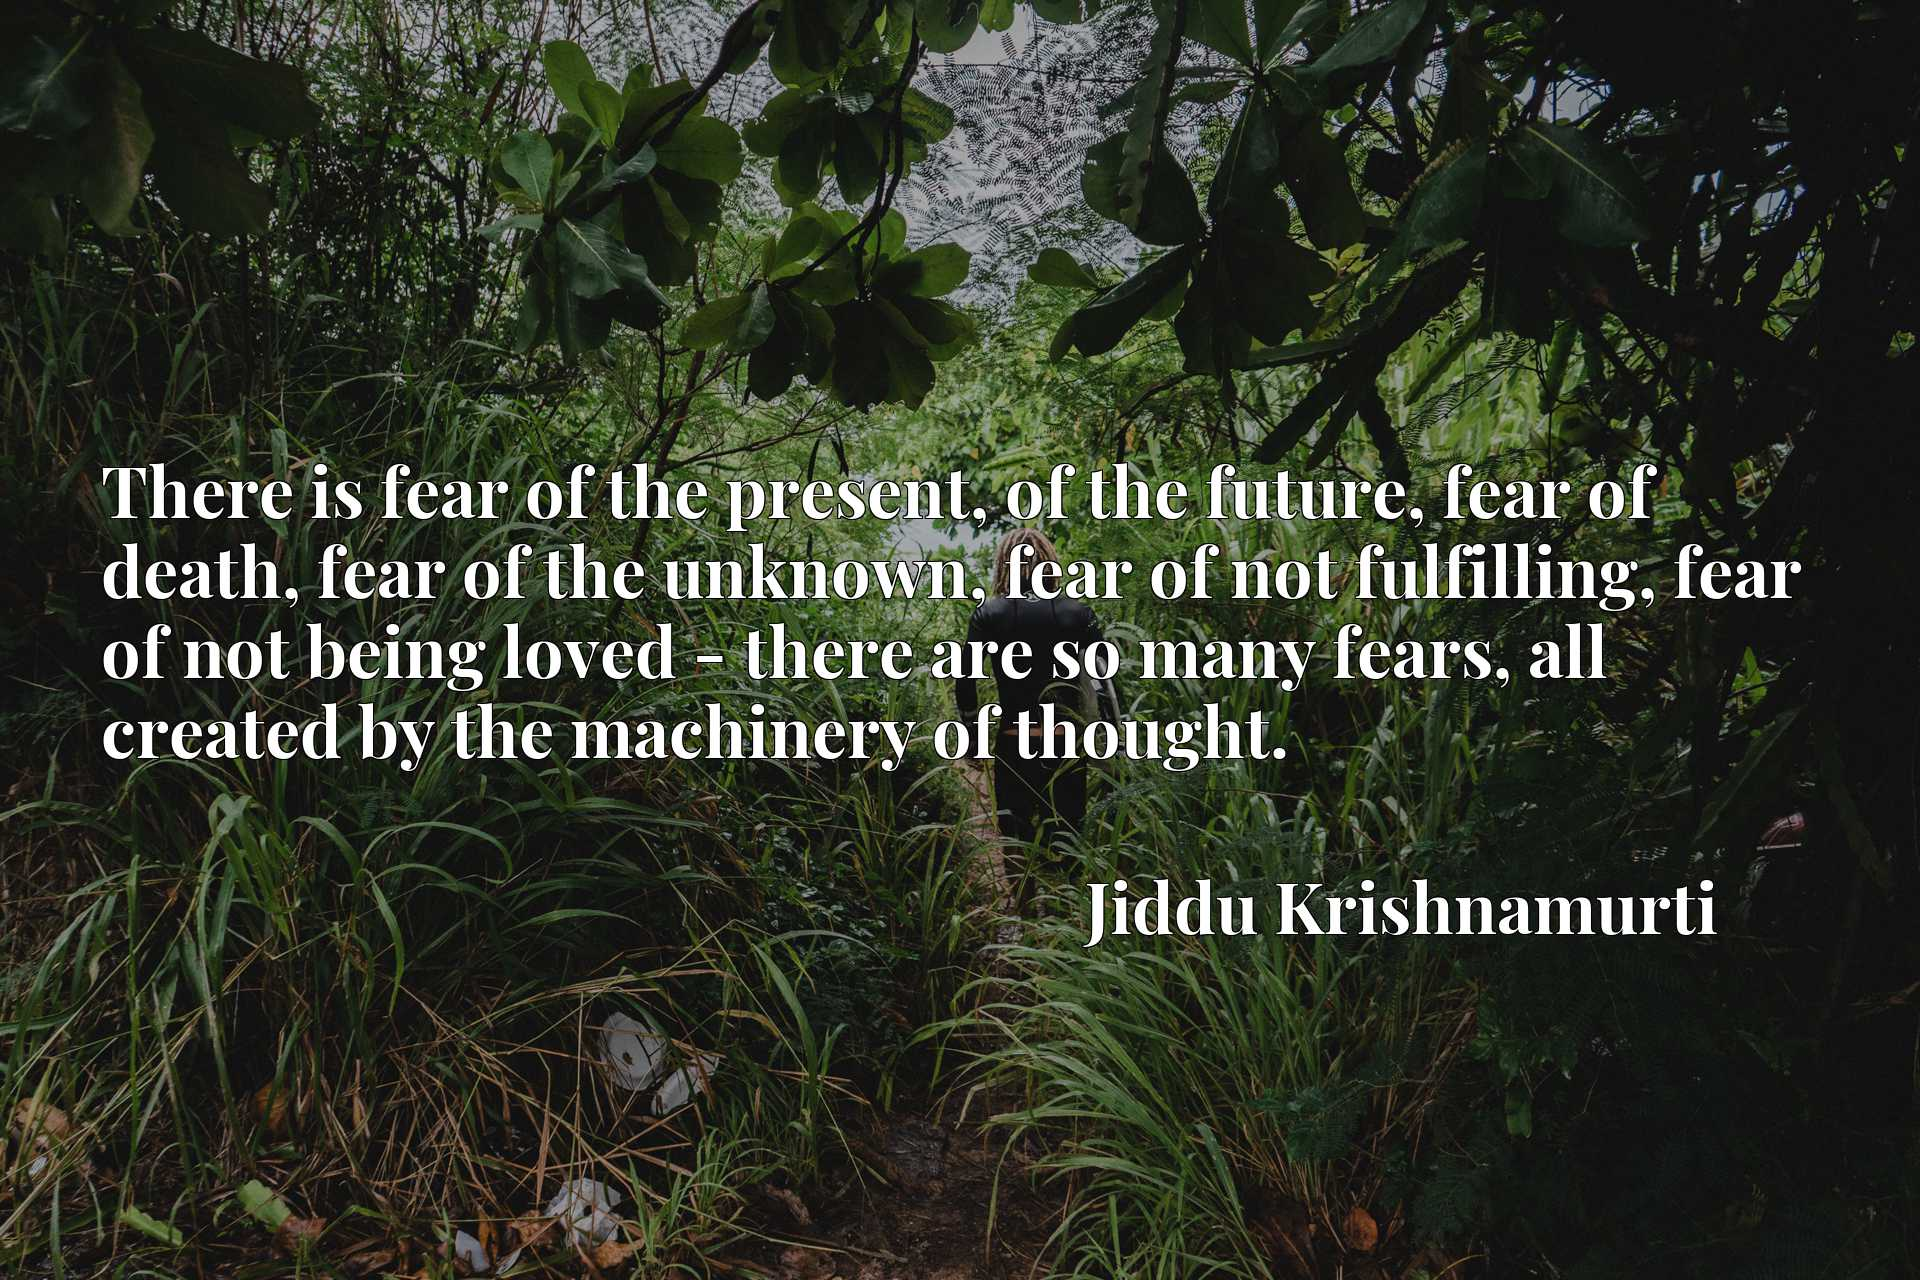 There is fear of the present, of the future, fear of death, fear of the unknown, fear of not fulfilling, fear of not being loved - there are so many fears, all created by the machinery of thought.